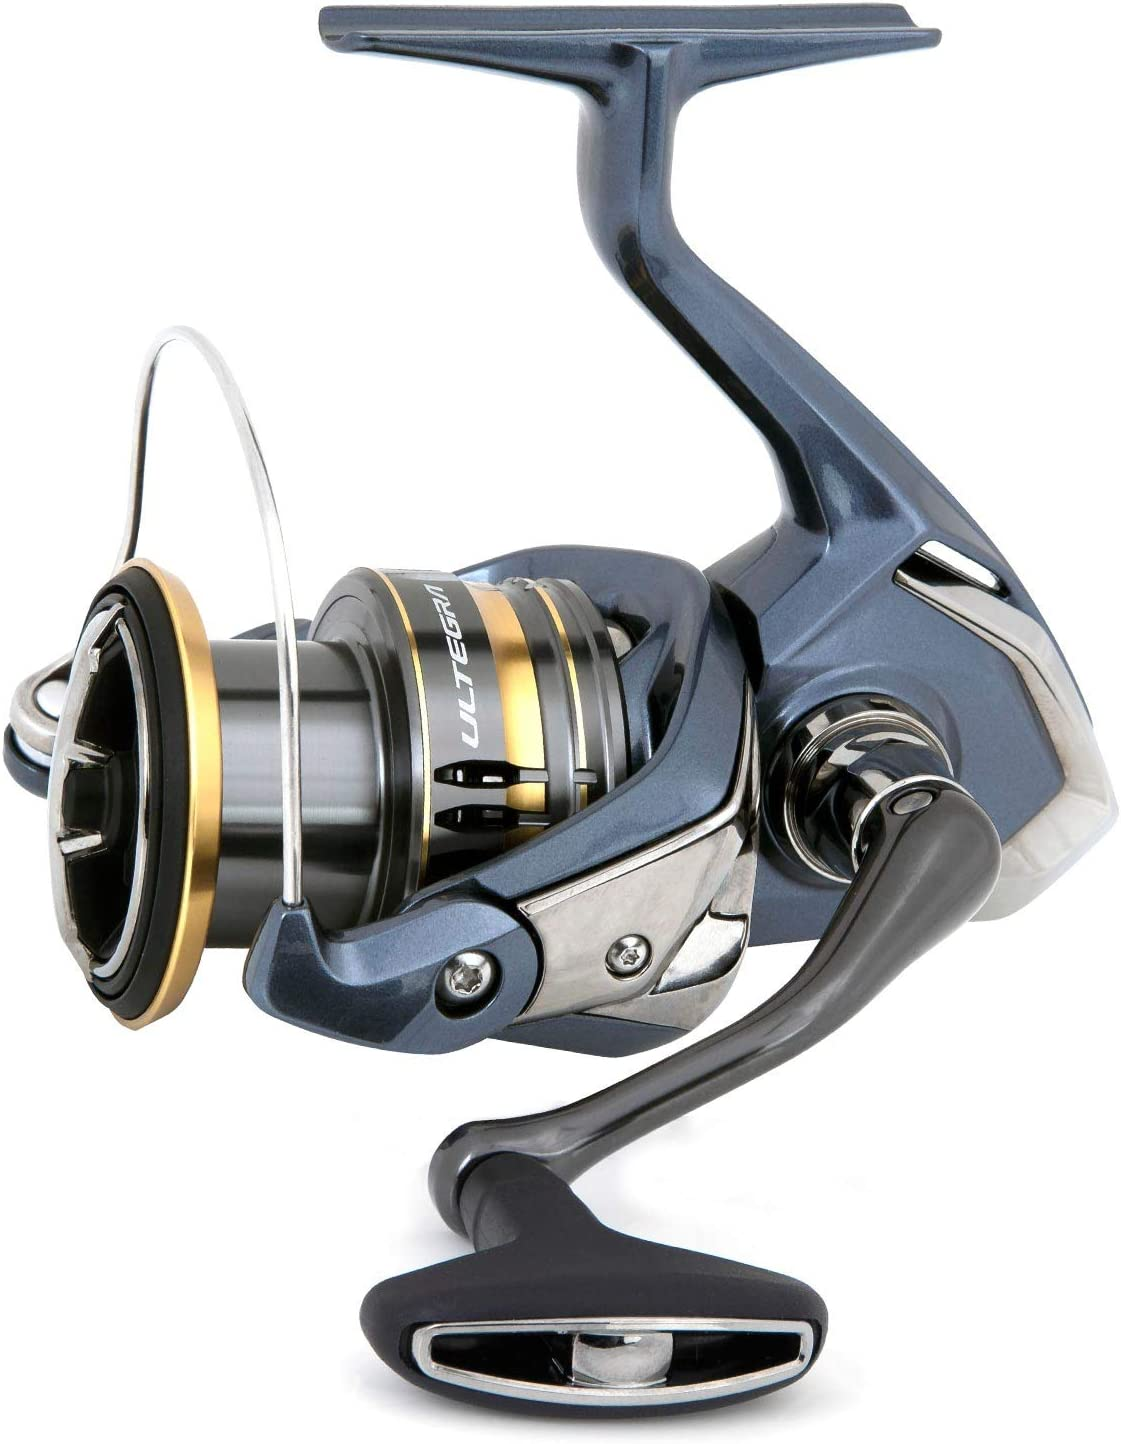 Shimano ULTC3000HGFC Ultegra C3000HGFC Reel Spinning Houston New color Mall Front Drag